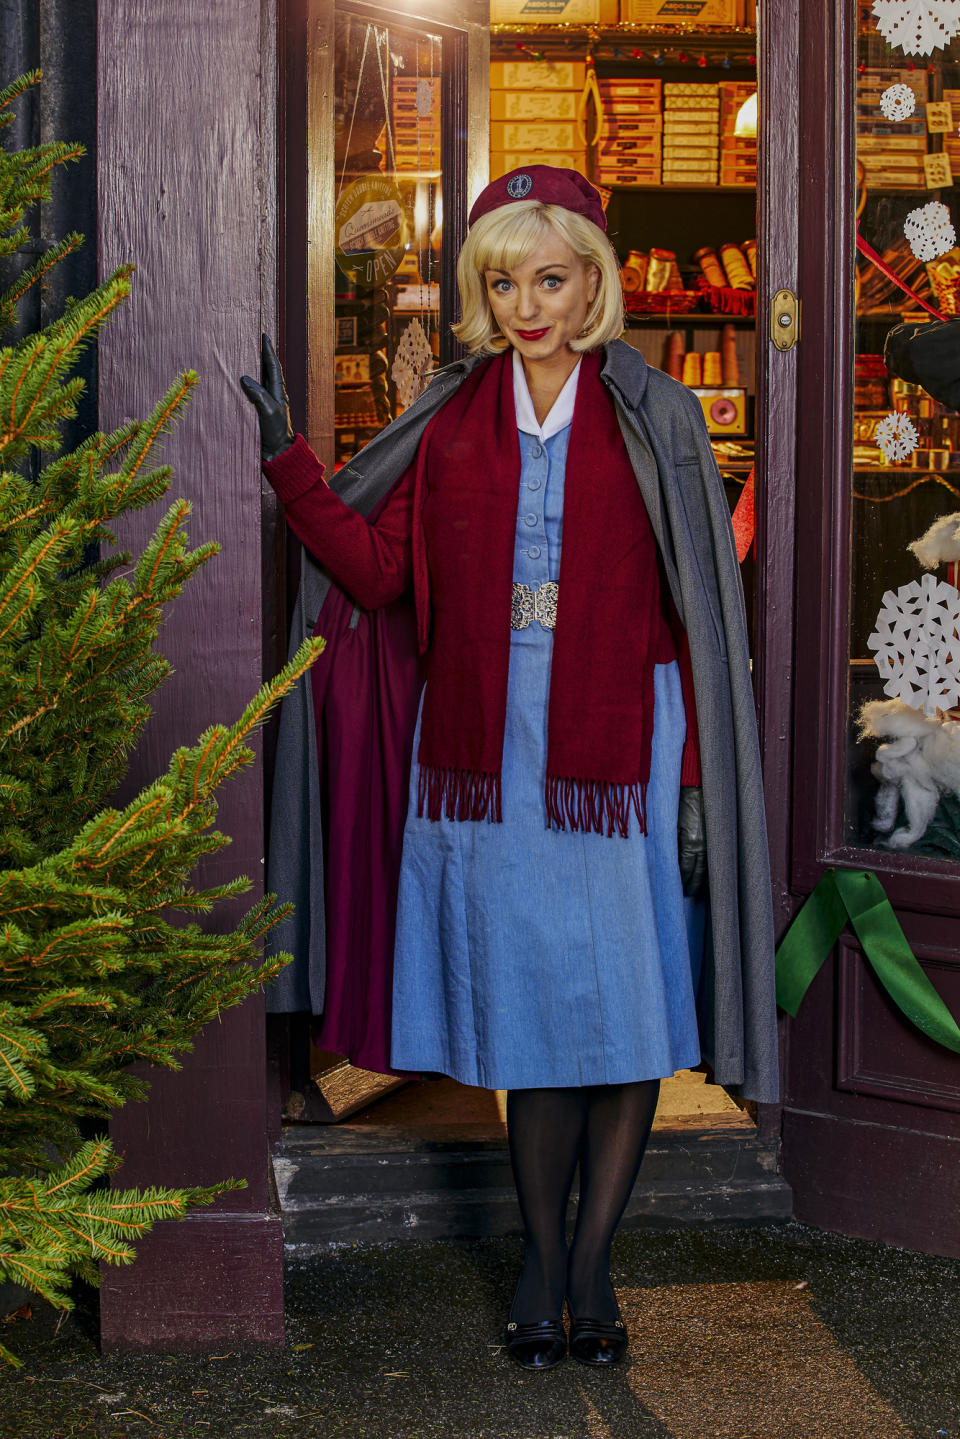 Call The Midwife - Nurse Trixie (HELEN GEORGE) - (Nealstreet Productions - Photographer: Nicky Johnston)